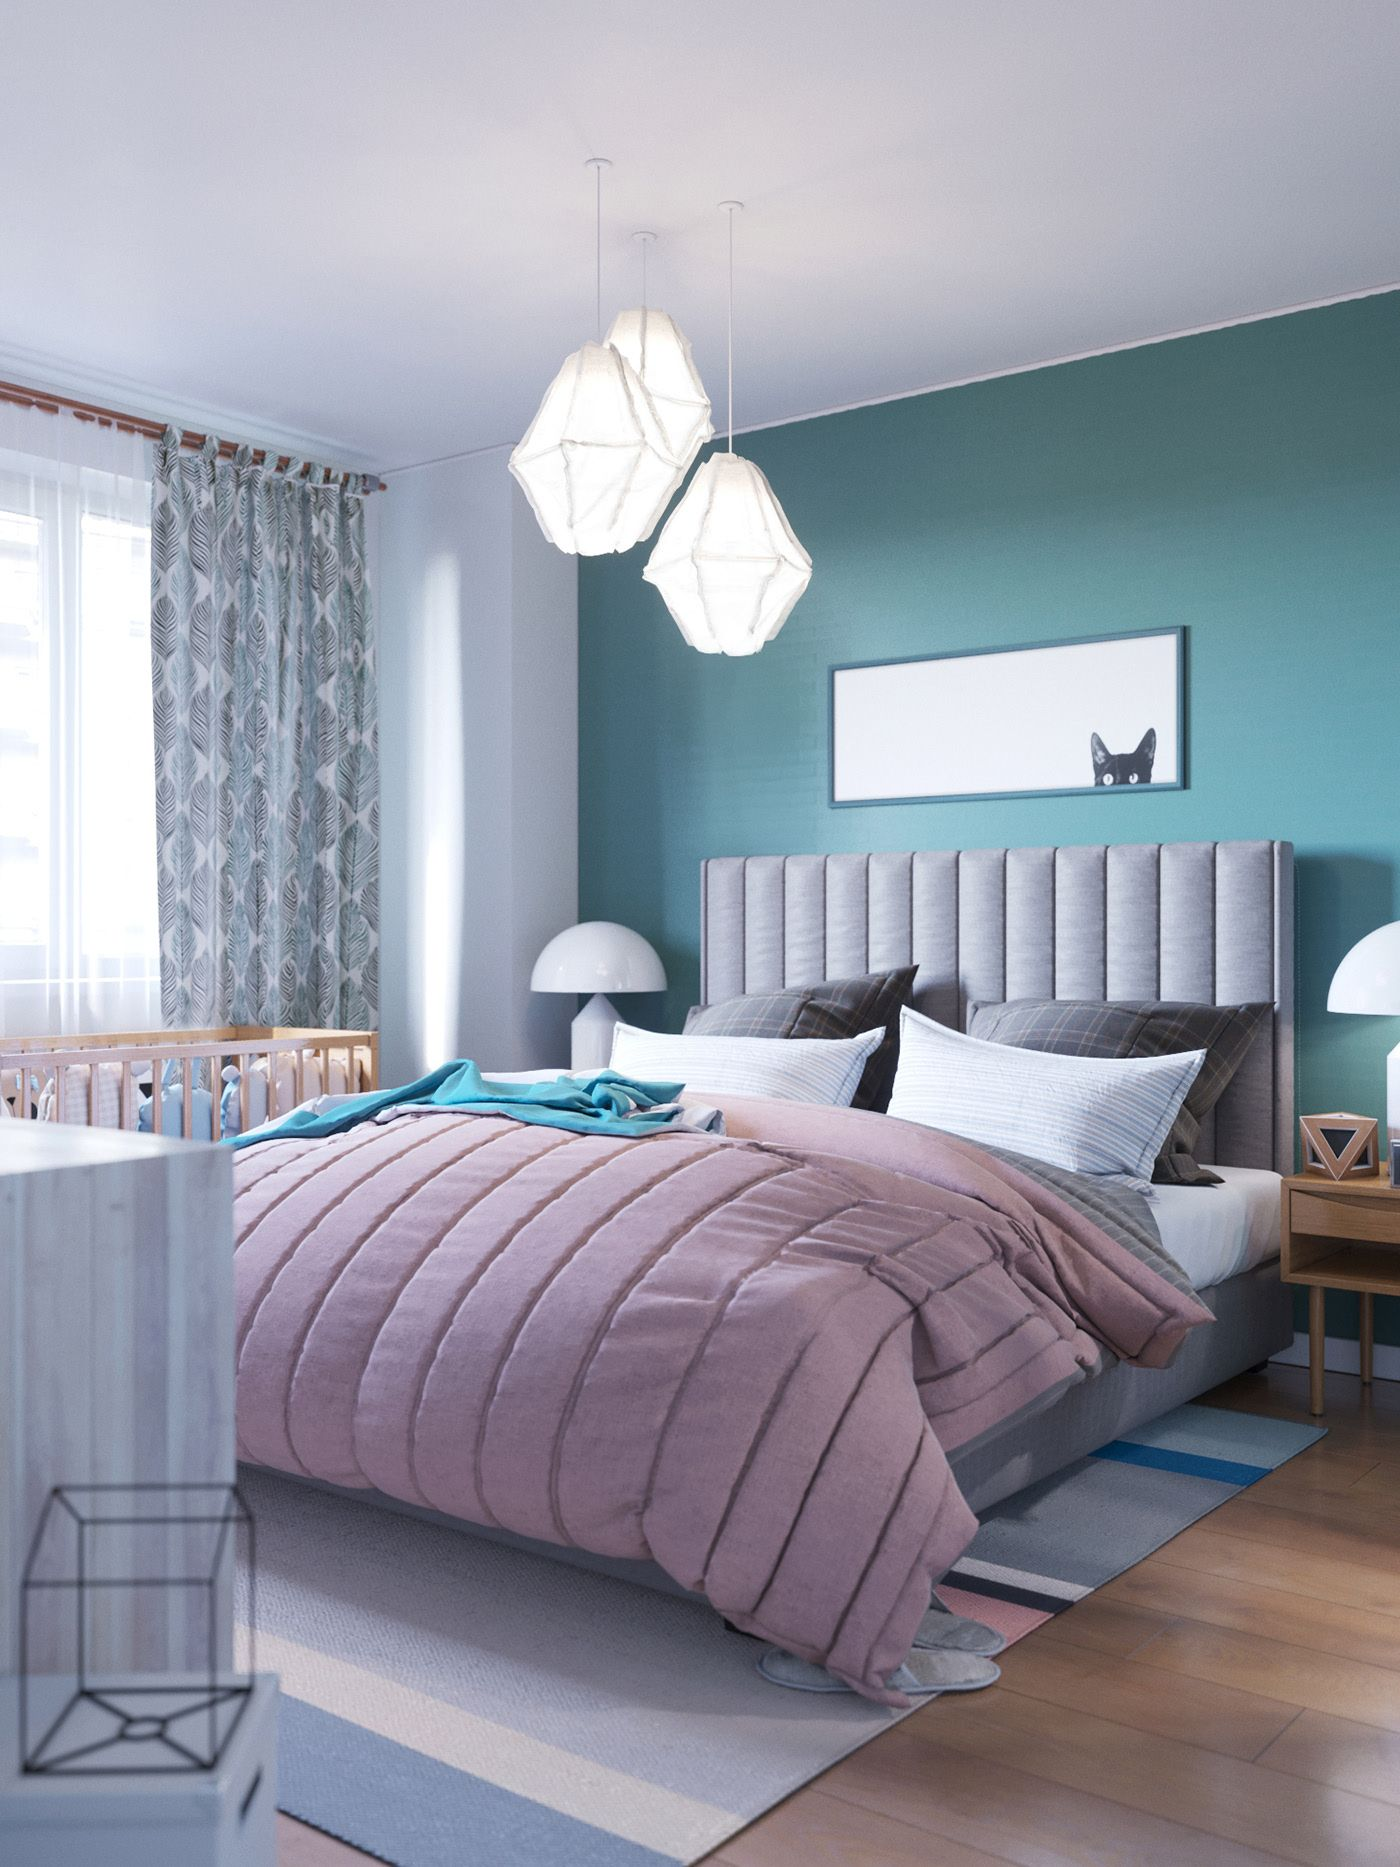 Bedroom of a young couple on Behance | Best bedroom colors ...